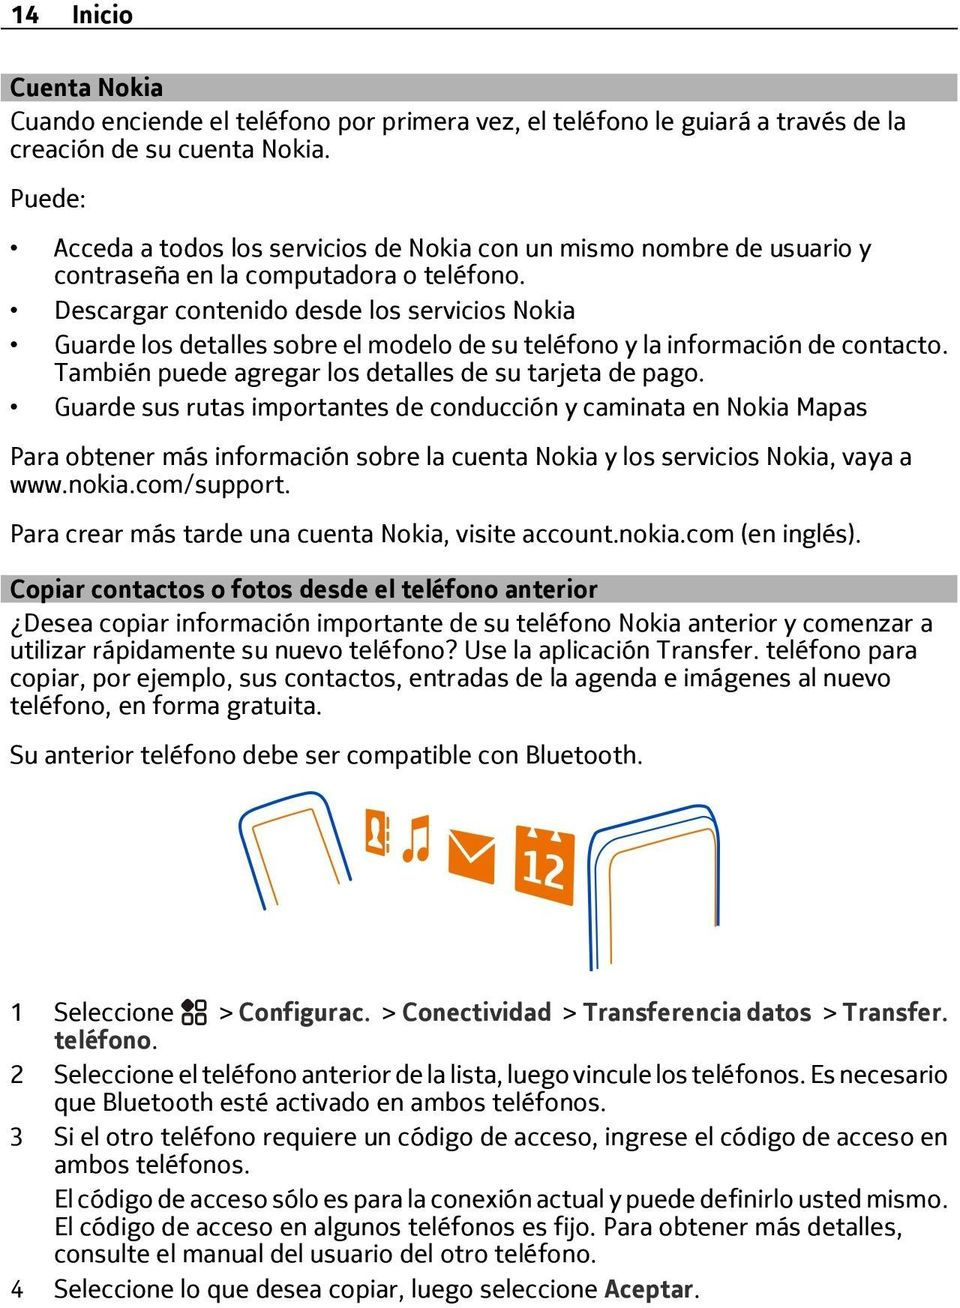 Manual del Usuario para Nokia PDF